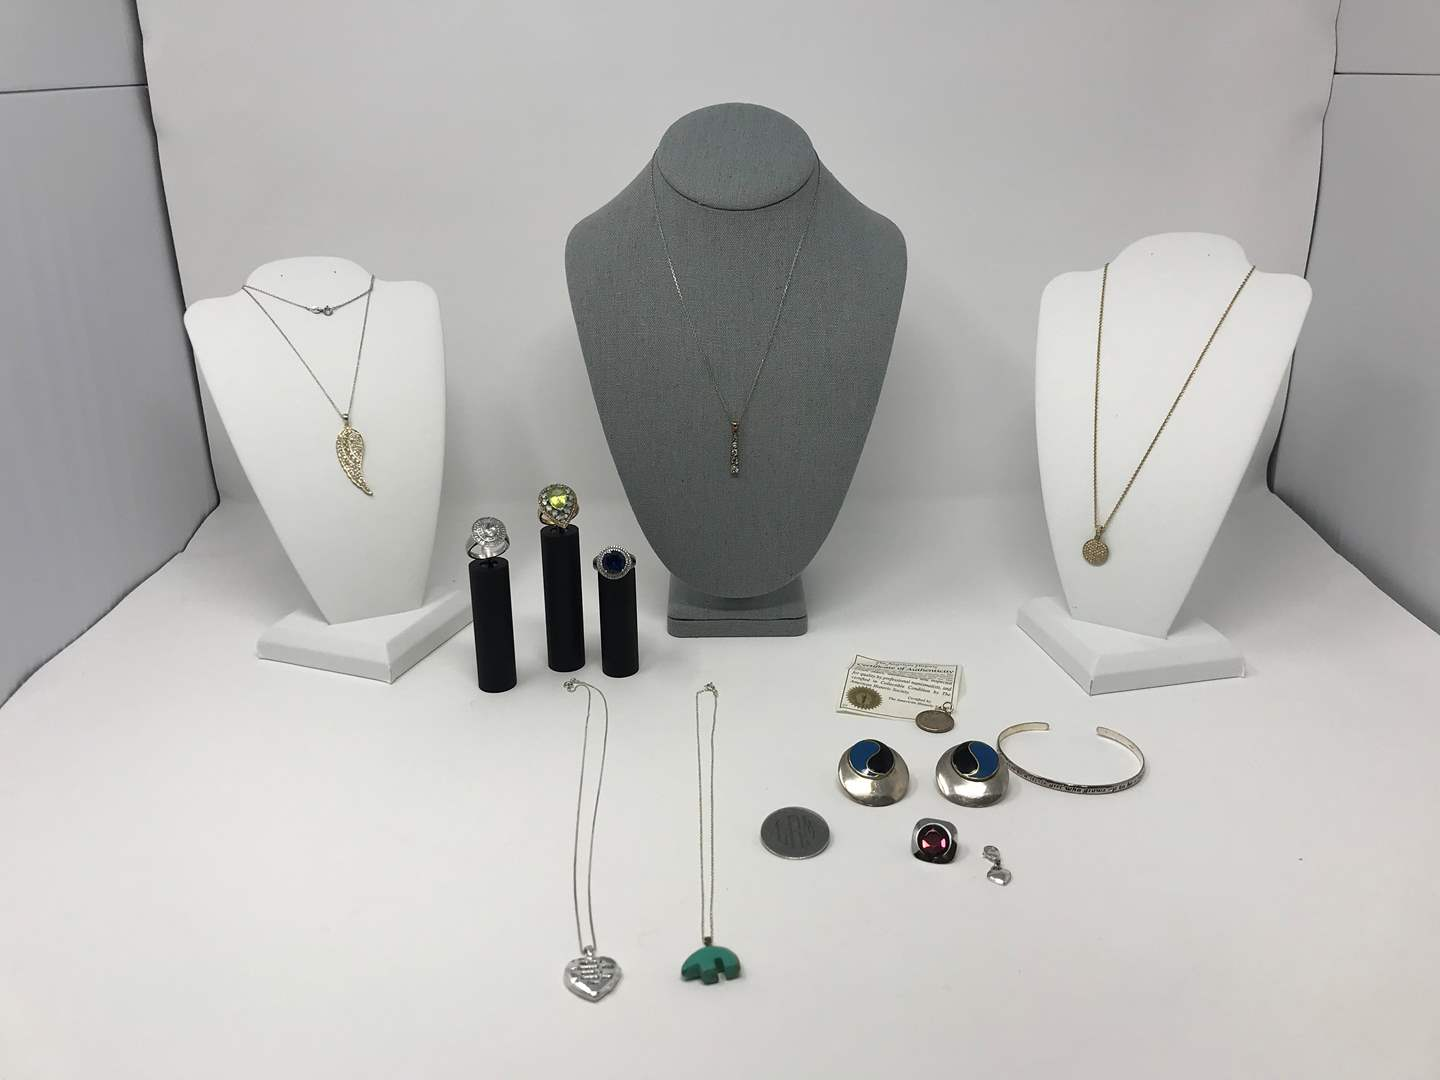 Lot # 81 - Selection of .925 Sterling Silver Jewelry w/Beautiful Stones, 1 Ring is .925 Sterling Plated - 76.82 Grams  (main image)